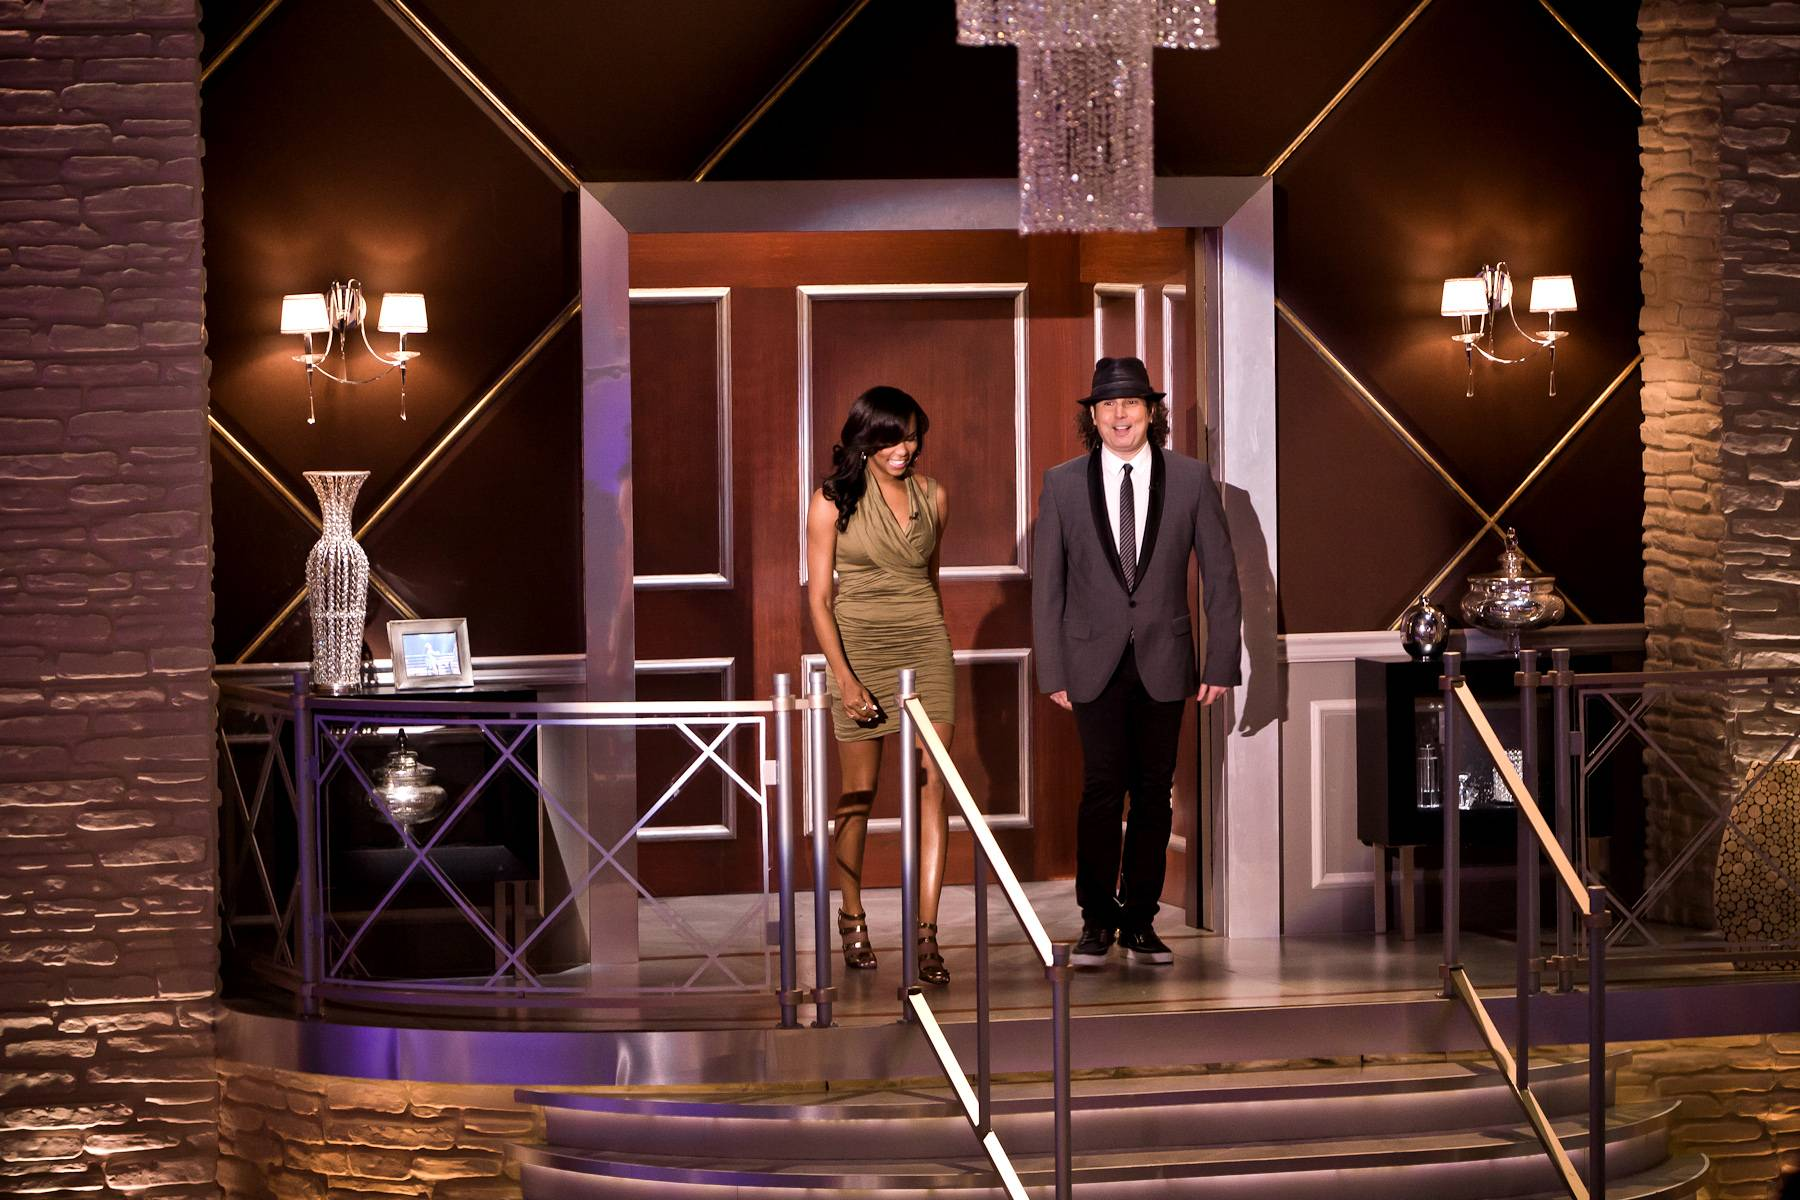 Jazz + R&B United - Jazz legend Boney James and LeToya Luckett enter the Penthouse. James has toured with the likes of Morris Day, the Isley Brothers, Teena Marie and more. Luckett is a former member of Destiny?s Child.(Photo: Darnell Williams/BET)